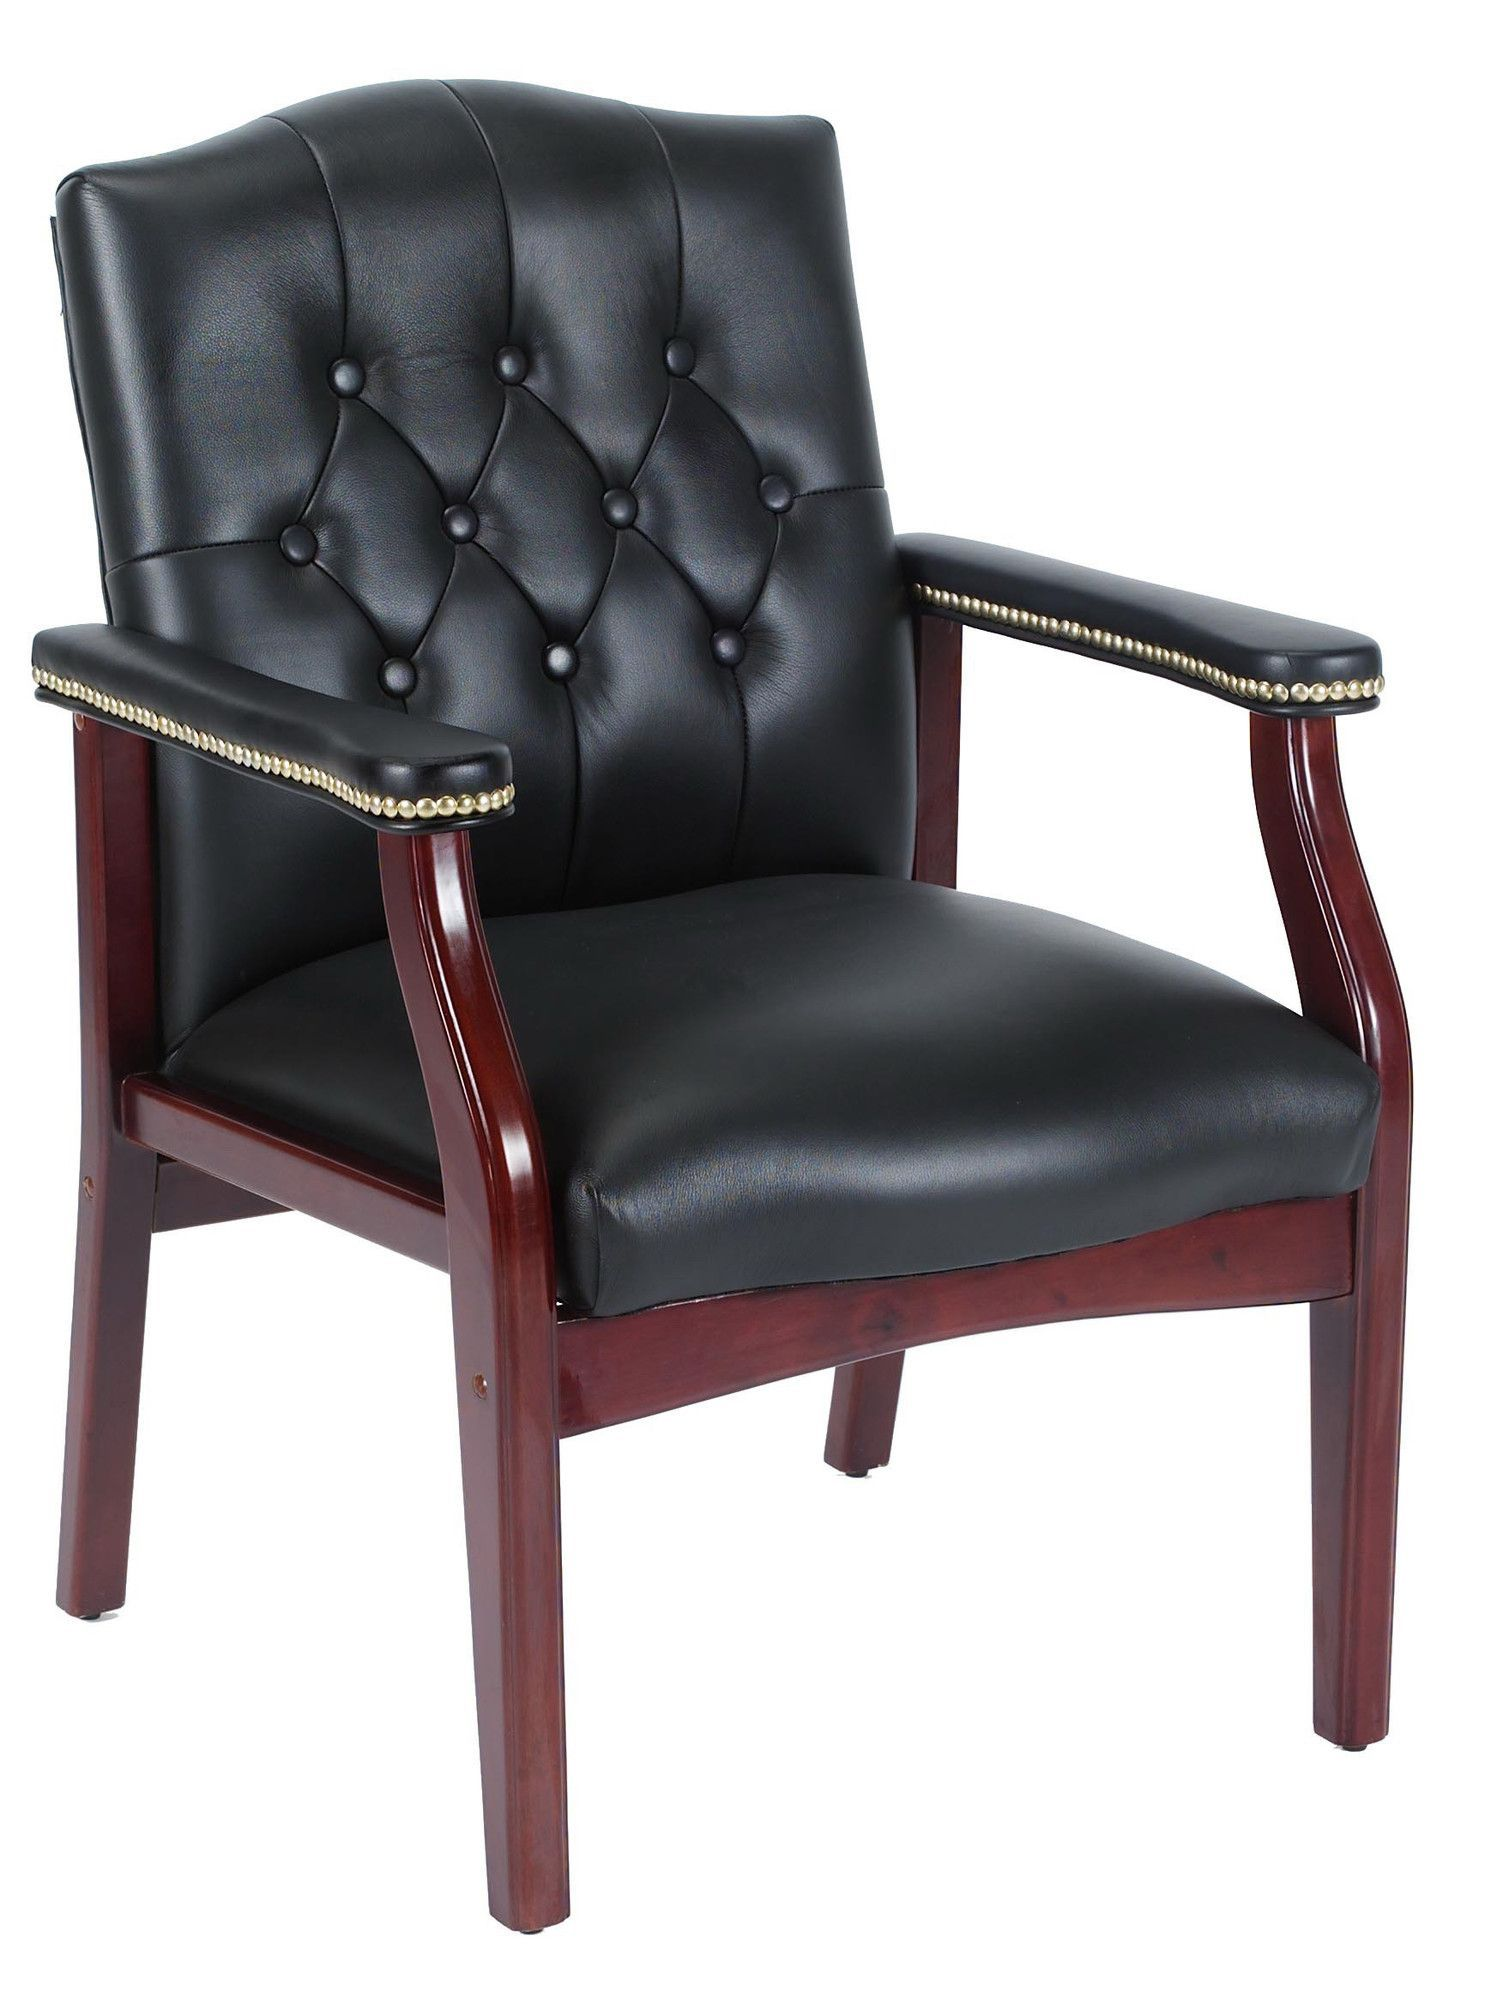 Astonishing Leather Guest Chair Office Guest Chairs Best Office Chair Machost Co Dining Chair Design Ideas Machostcouk